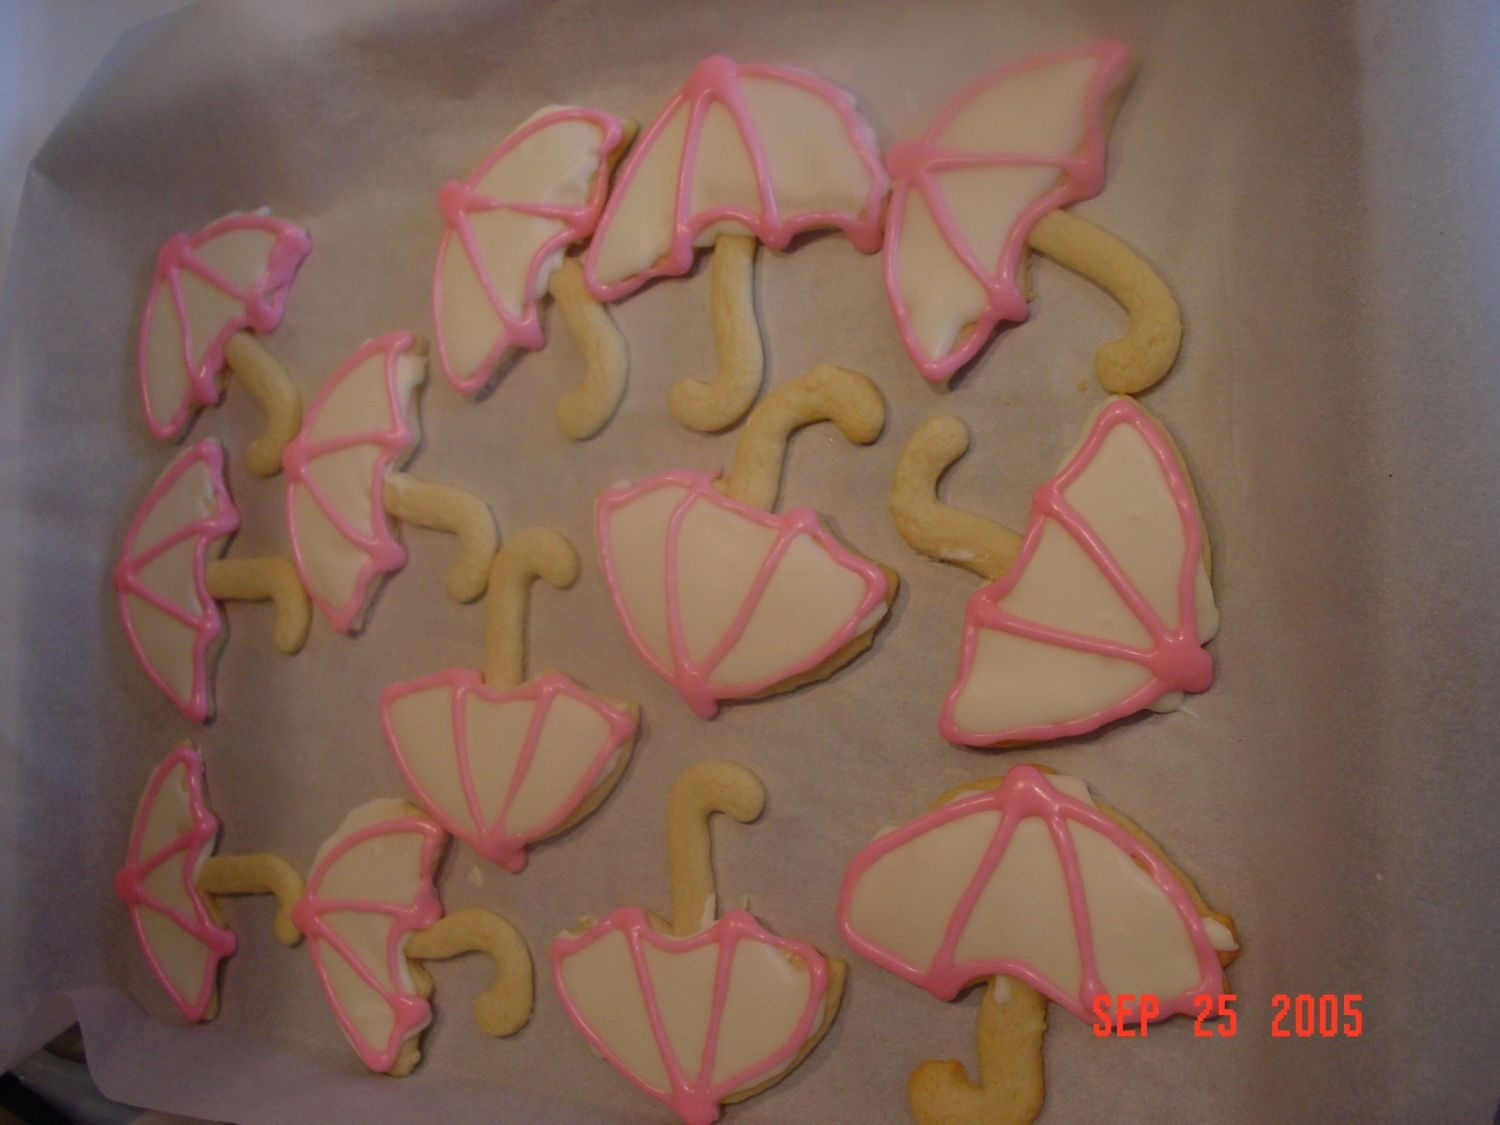 Baby Shower Umbrellas Almond sugar cookies for baby shower. Thanks for looking!